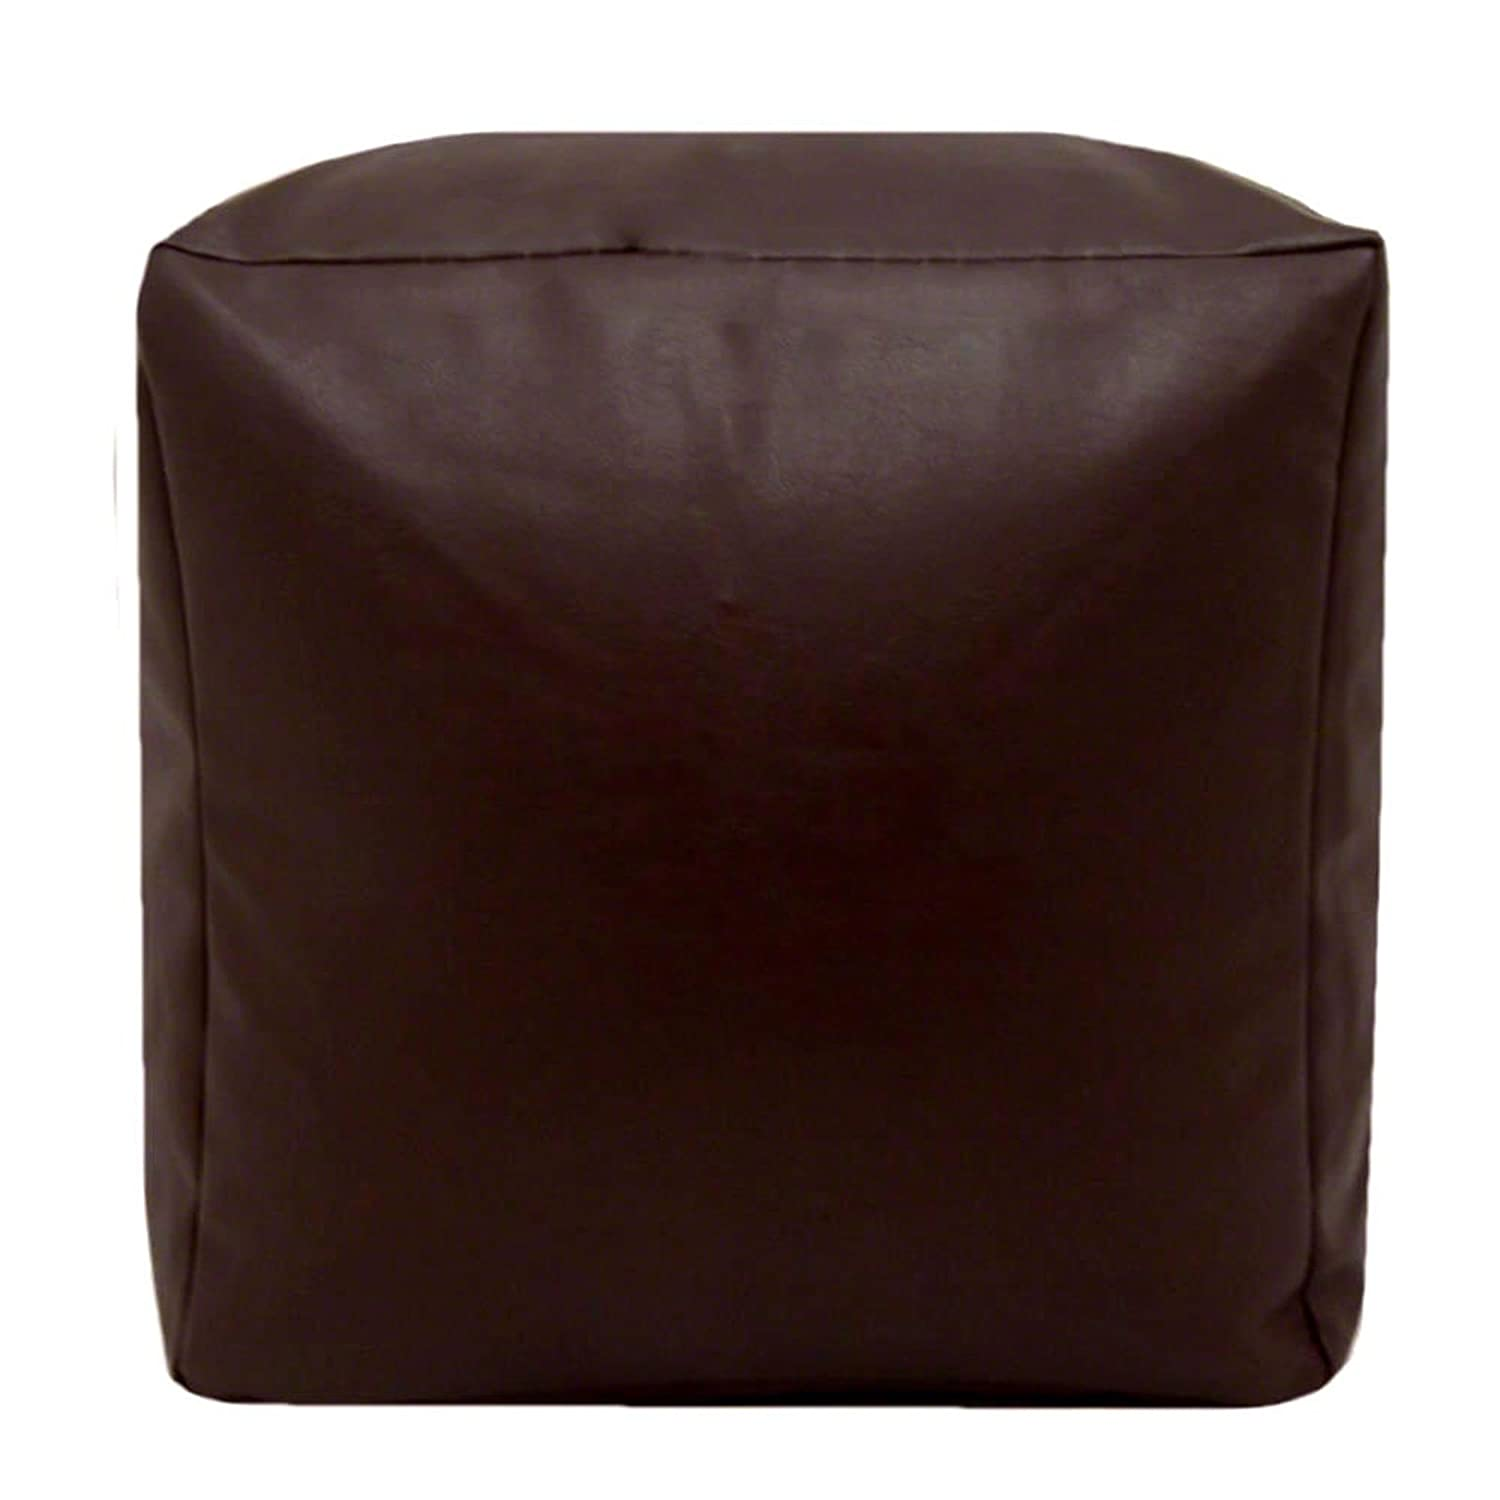 Faux Leather Brown Chequer Bean Bag Cube Foot Stool eMarkooz